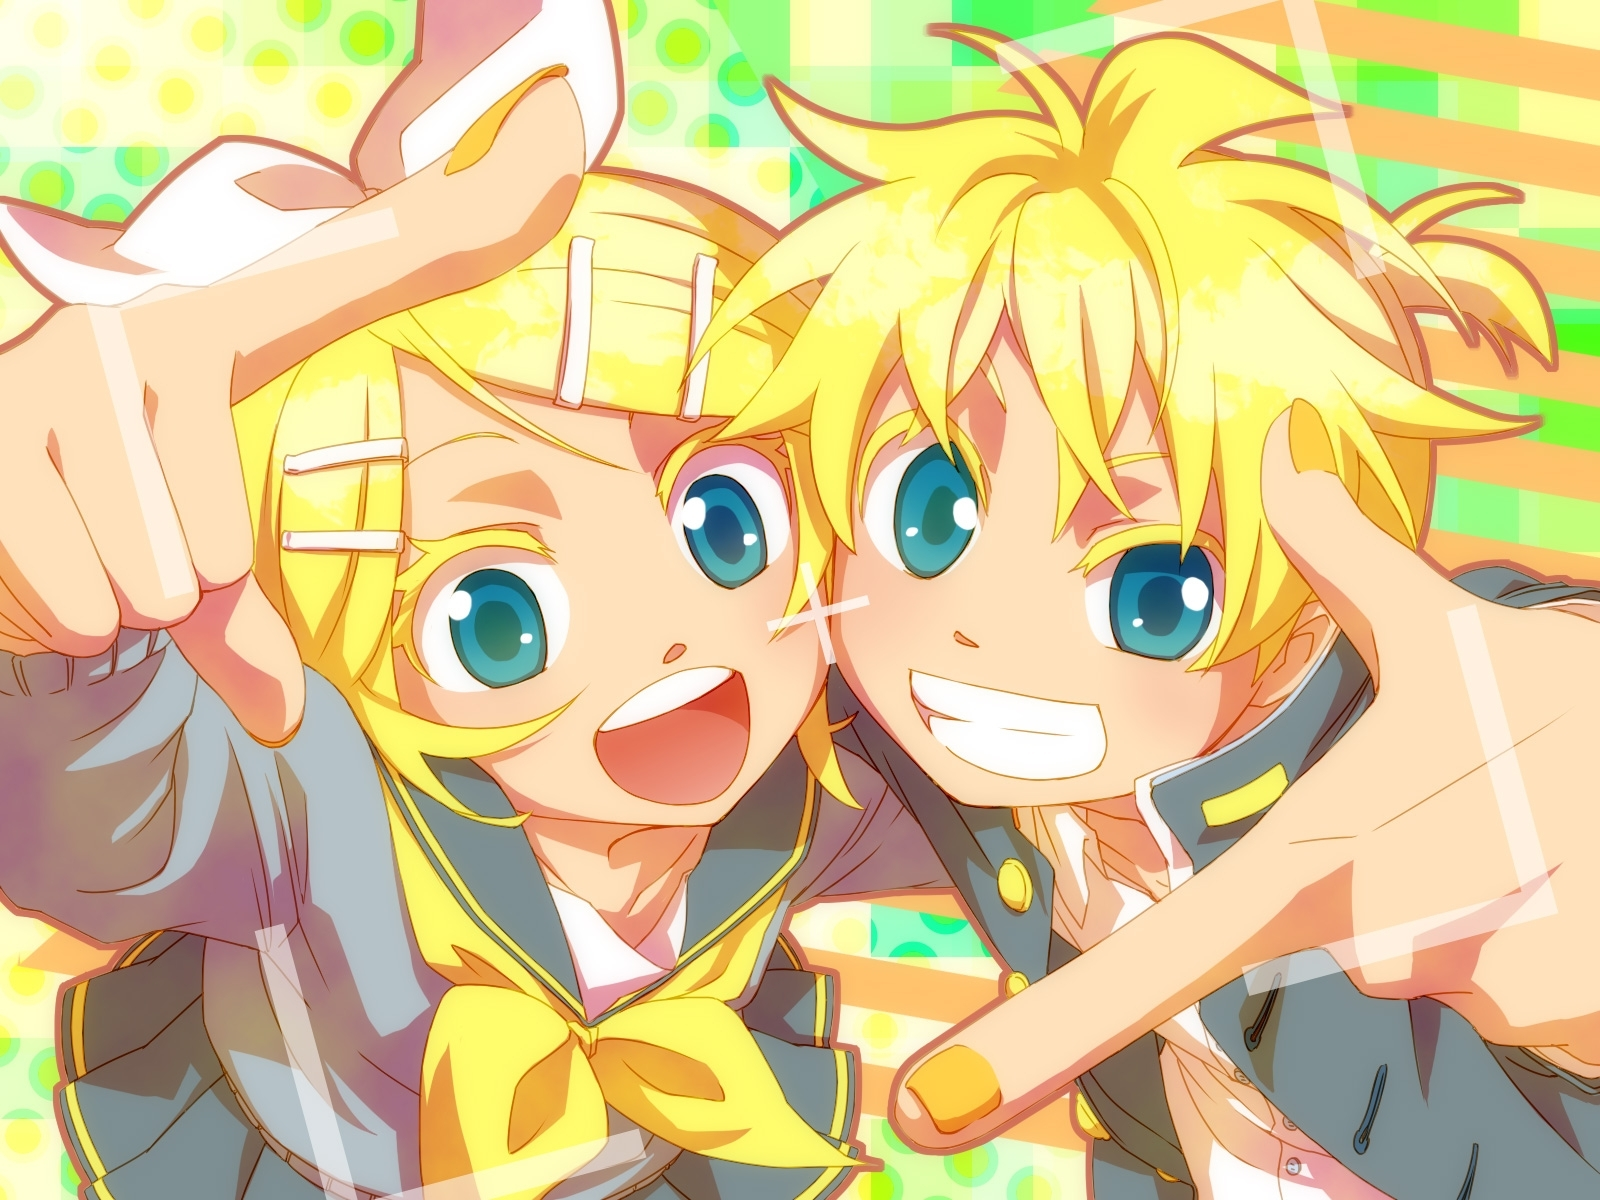 kagamine mirrors - vocaloid - wallpaper #73965 - zerochan anime